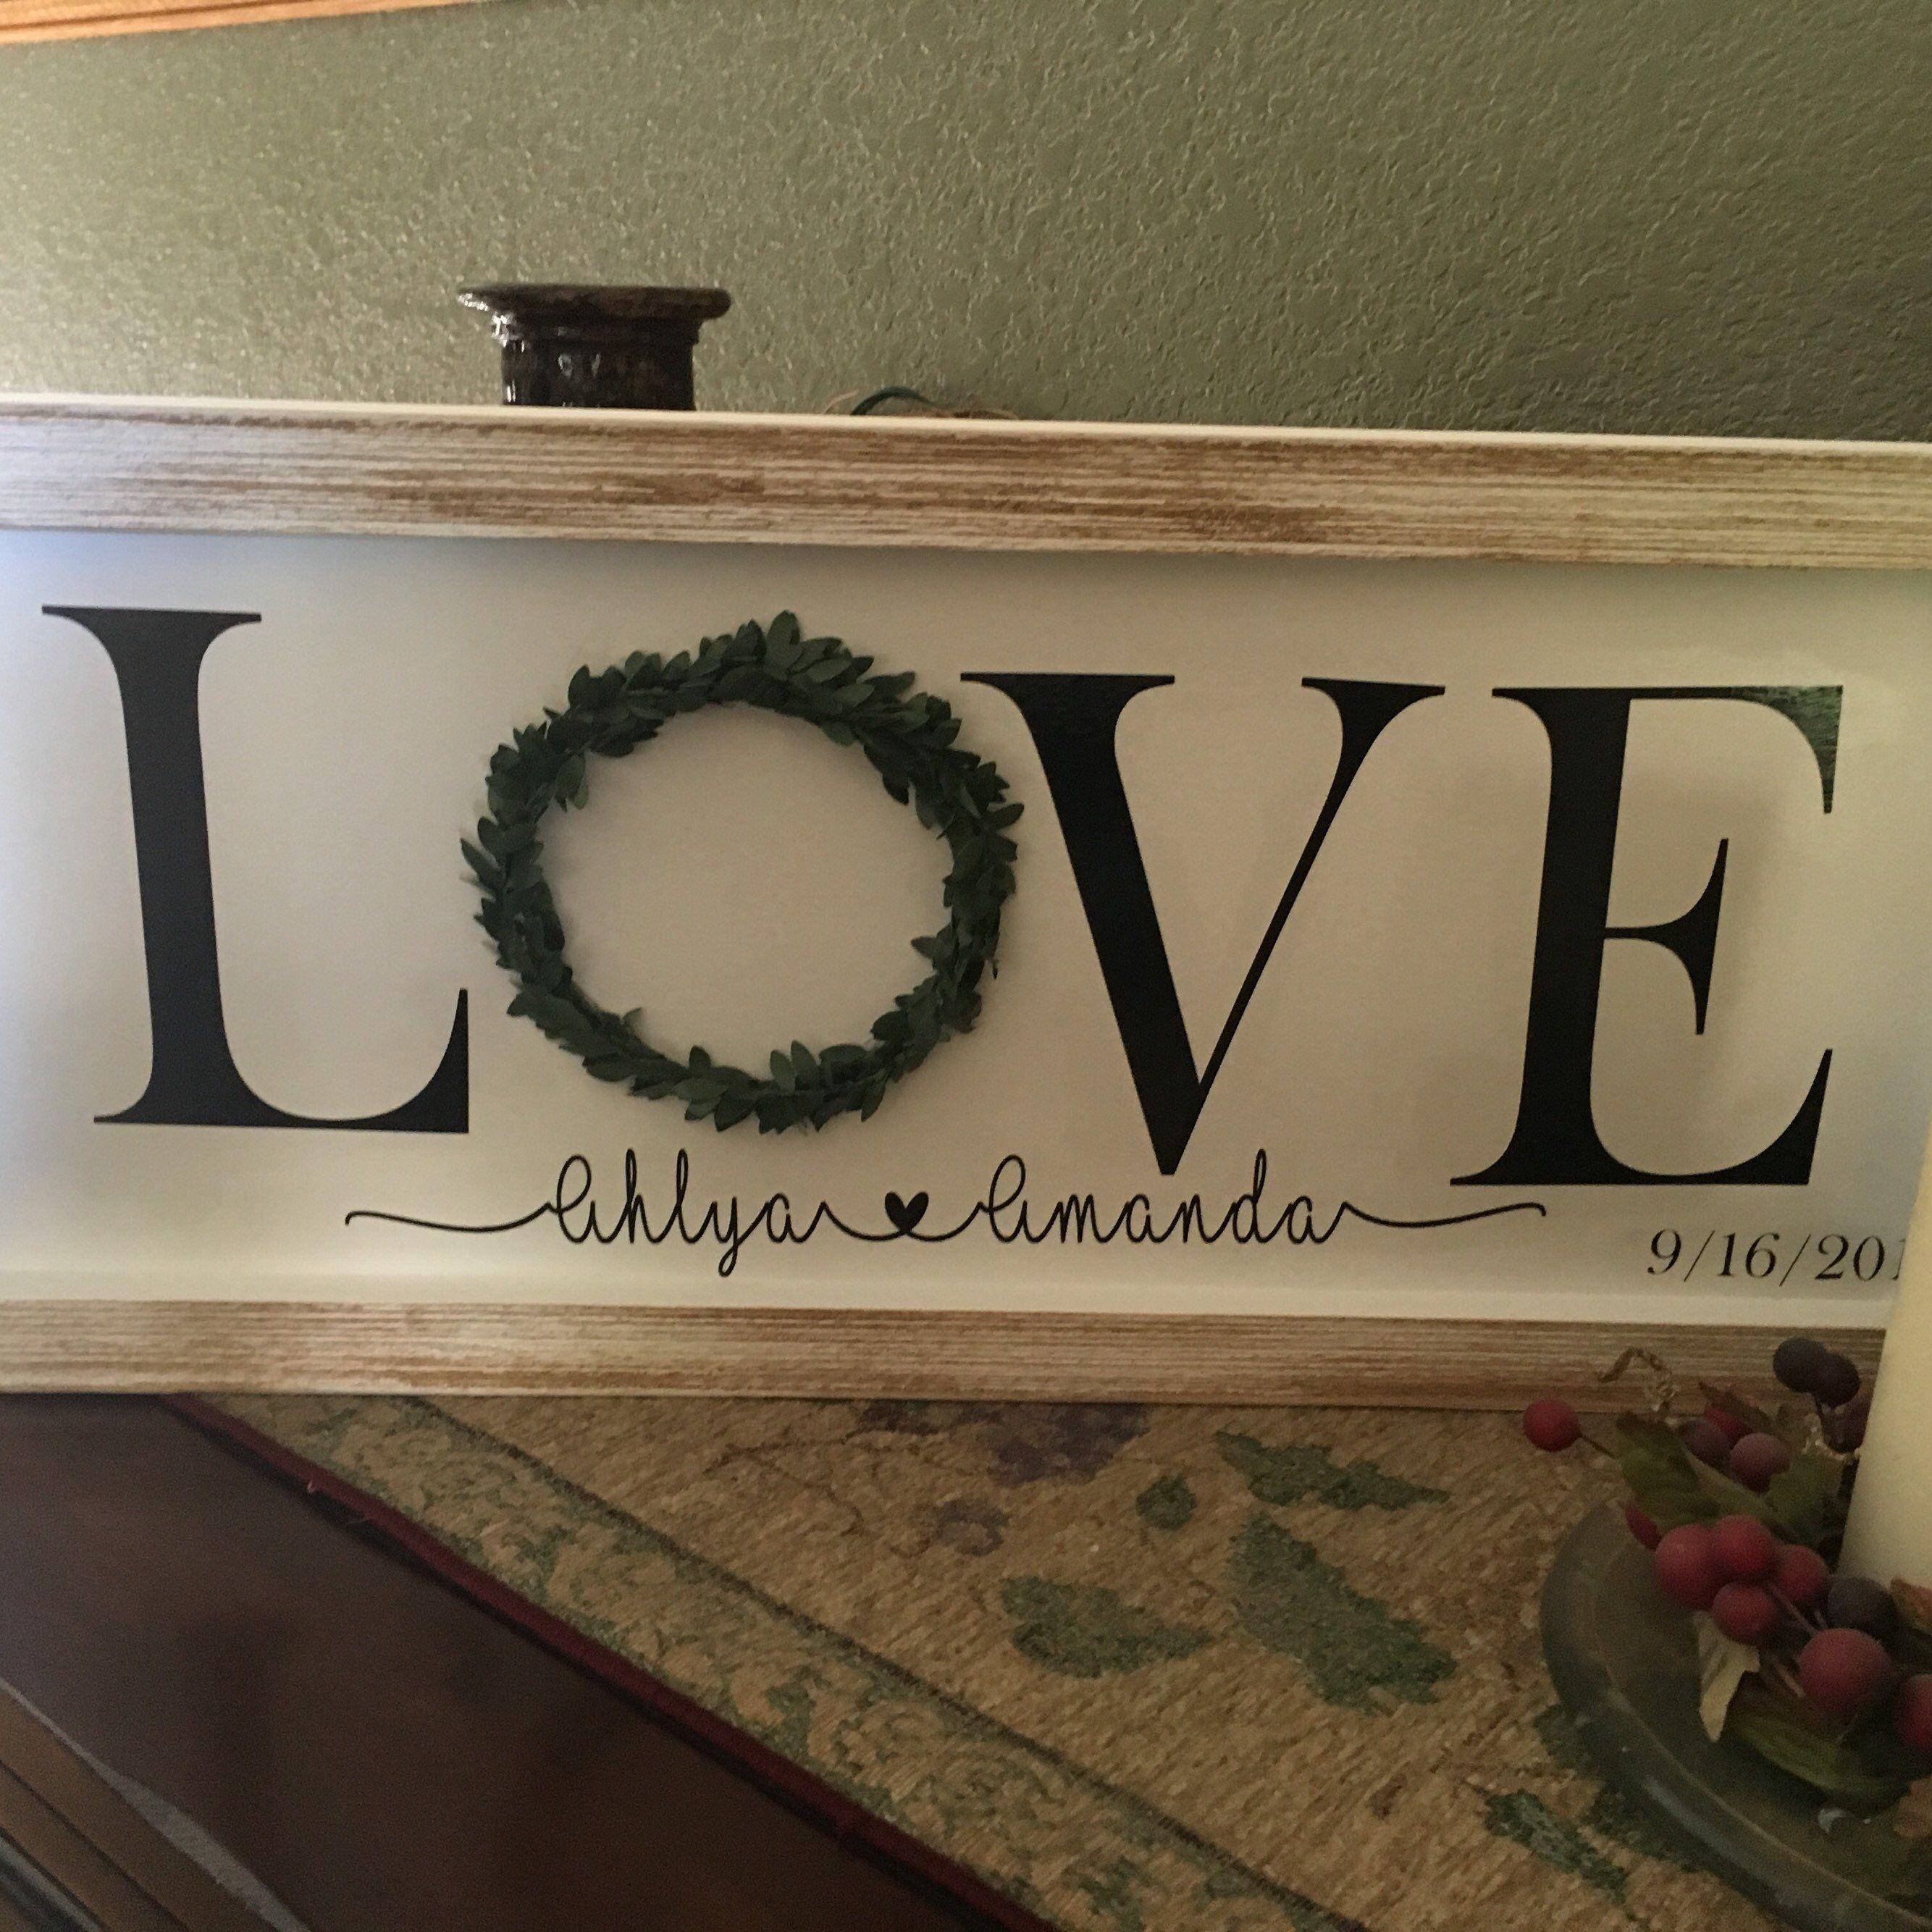 Excited To Share This Item From My Etsy Shop 10x24 Handmade Wooden Frame Love Simply Blessed Sayings Wall Decor Customiz Handmade Wooden Wall Decor Etsy